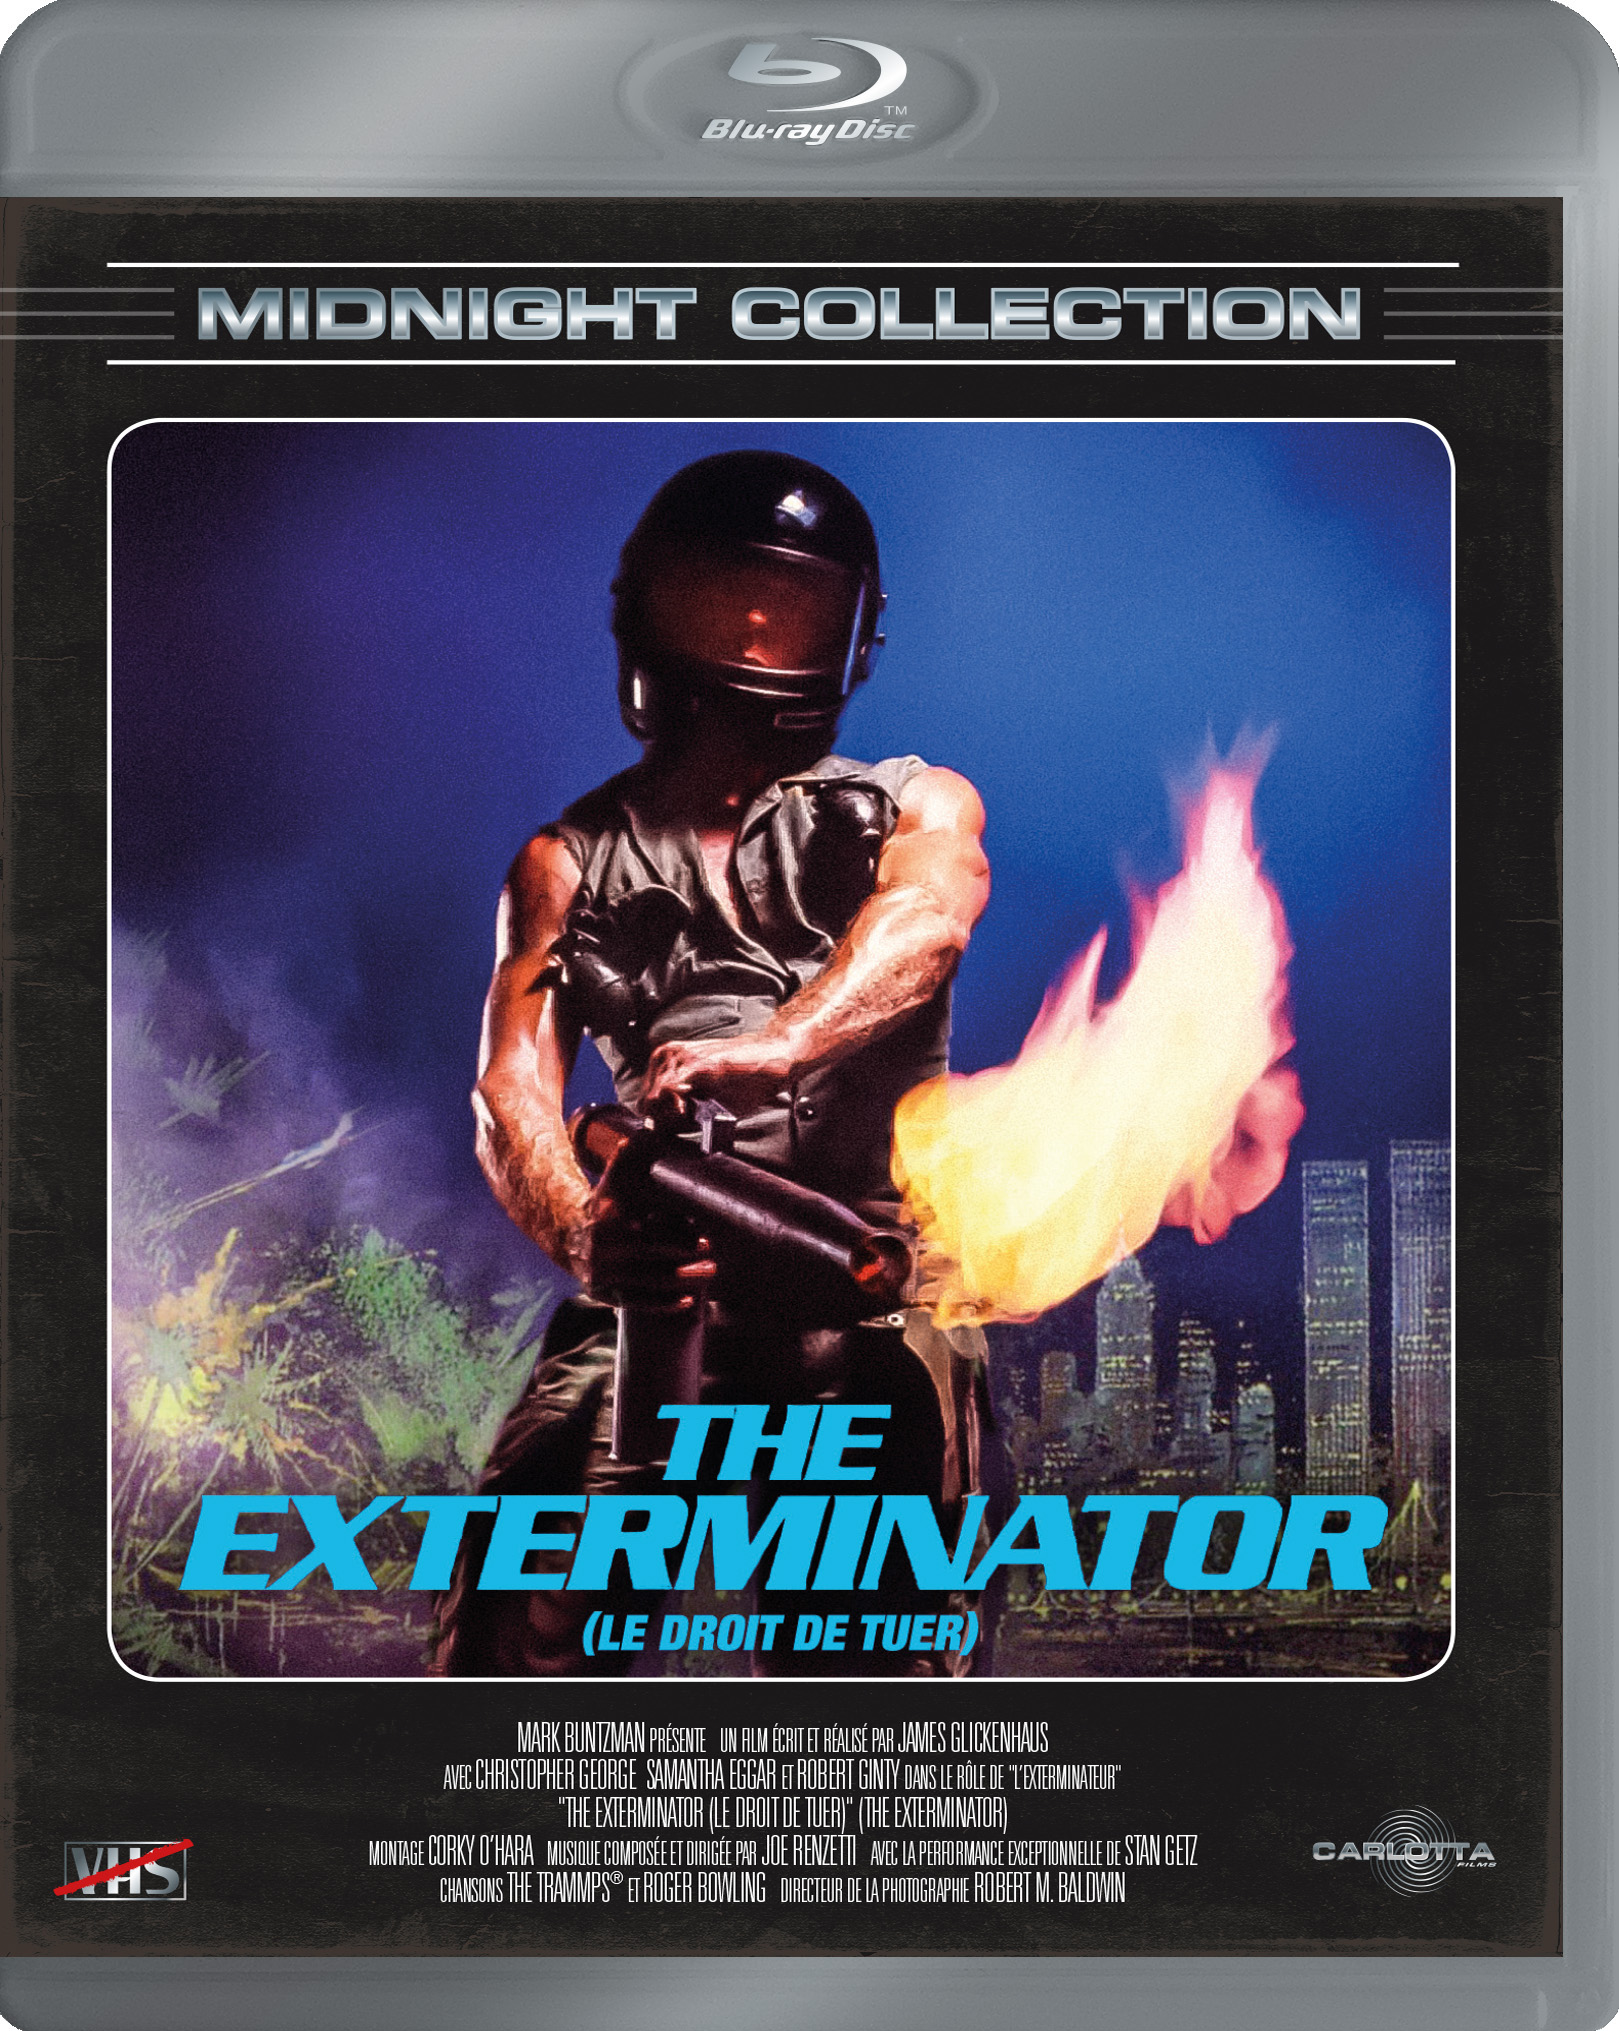 The Exterminator, de James Glickenhaus